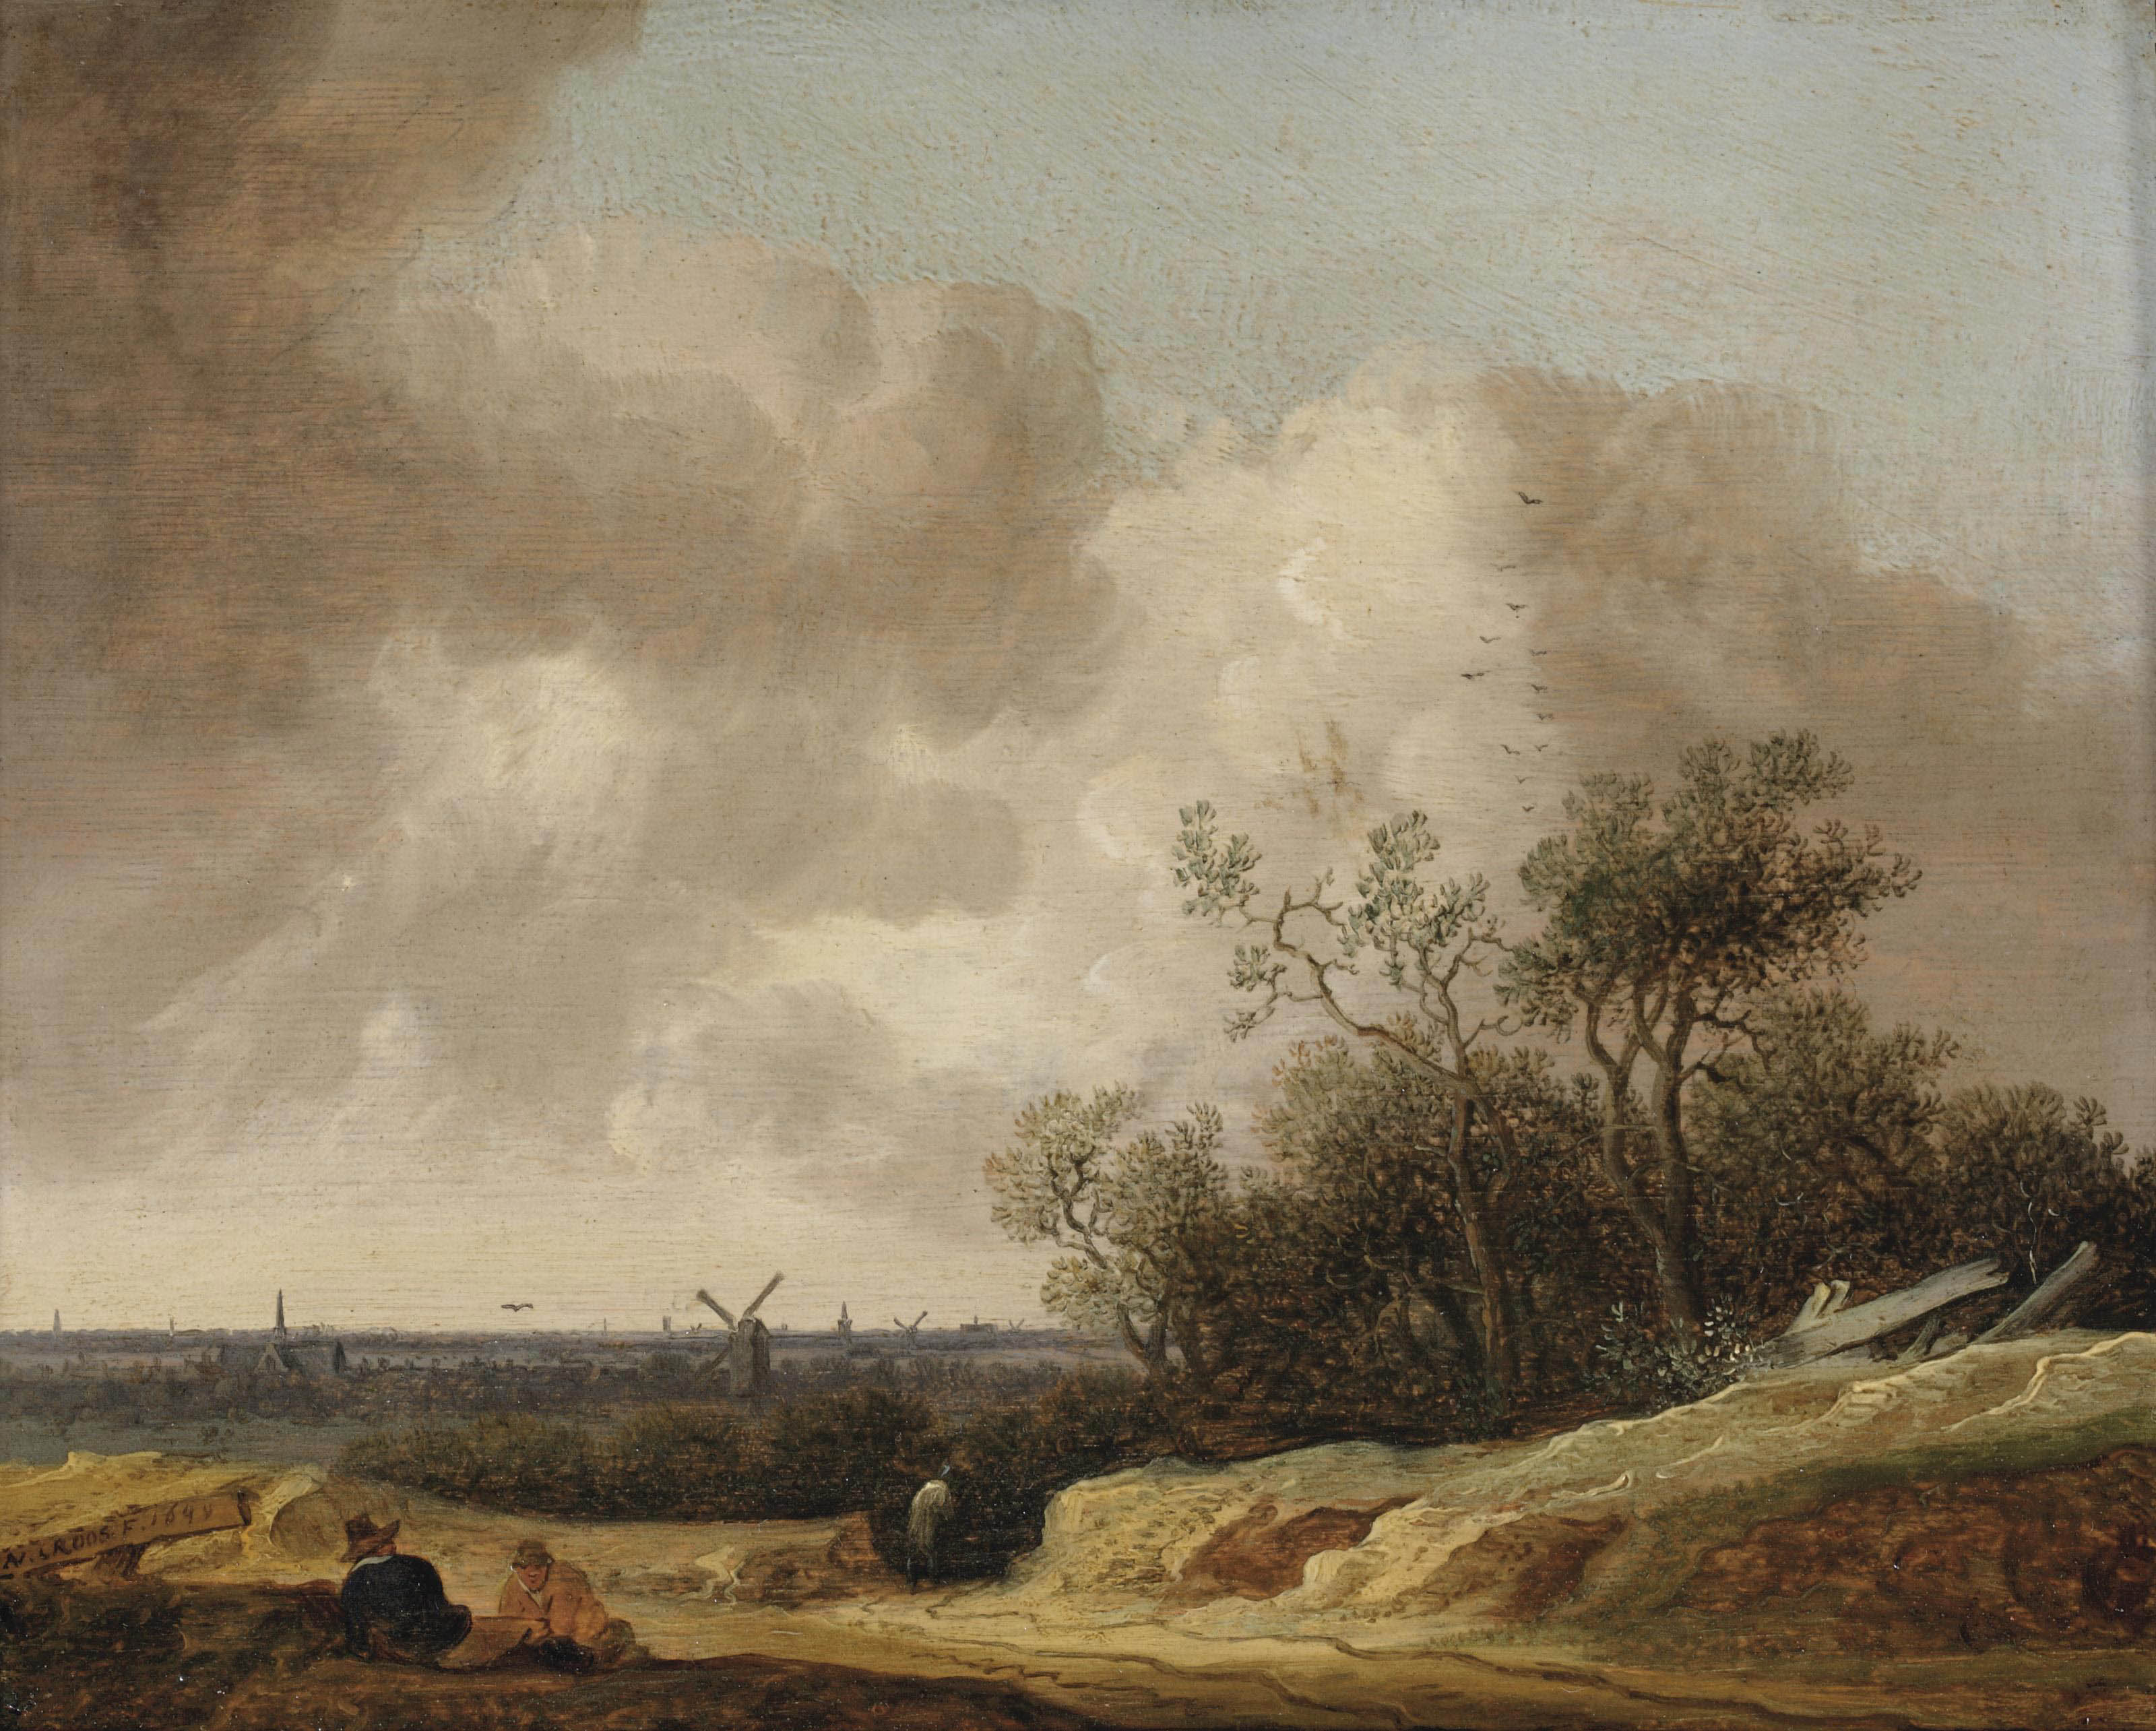 A dune landscape with figures resting near a track, a view of Haarlem in the distance